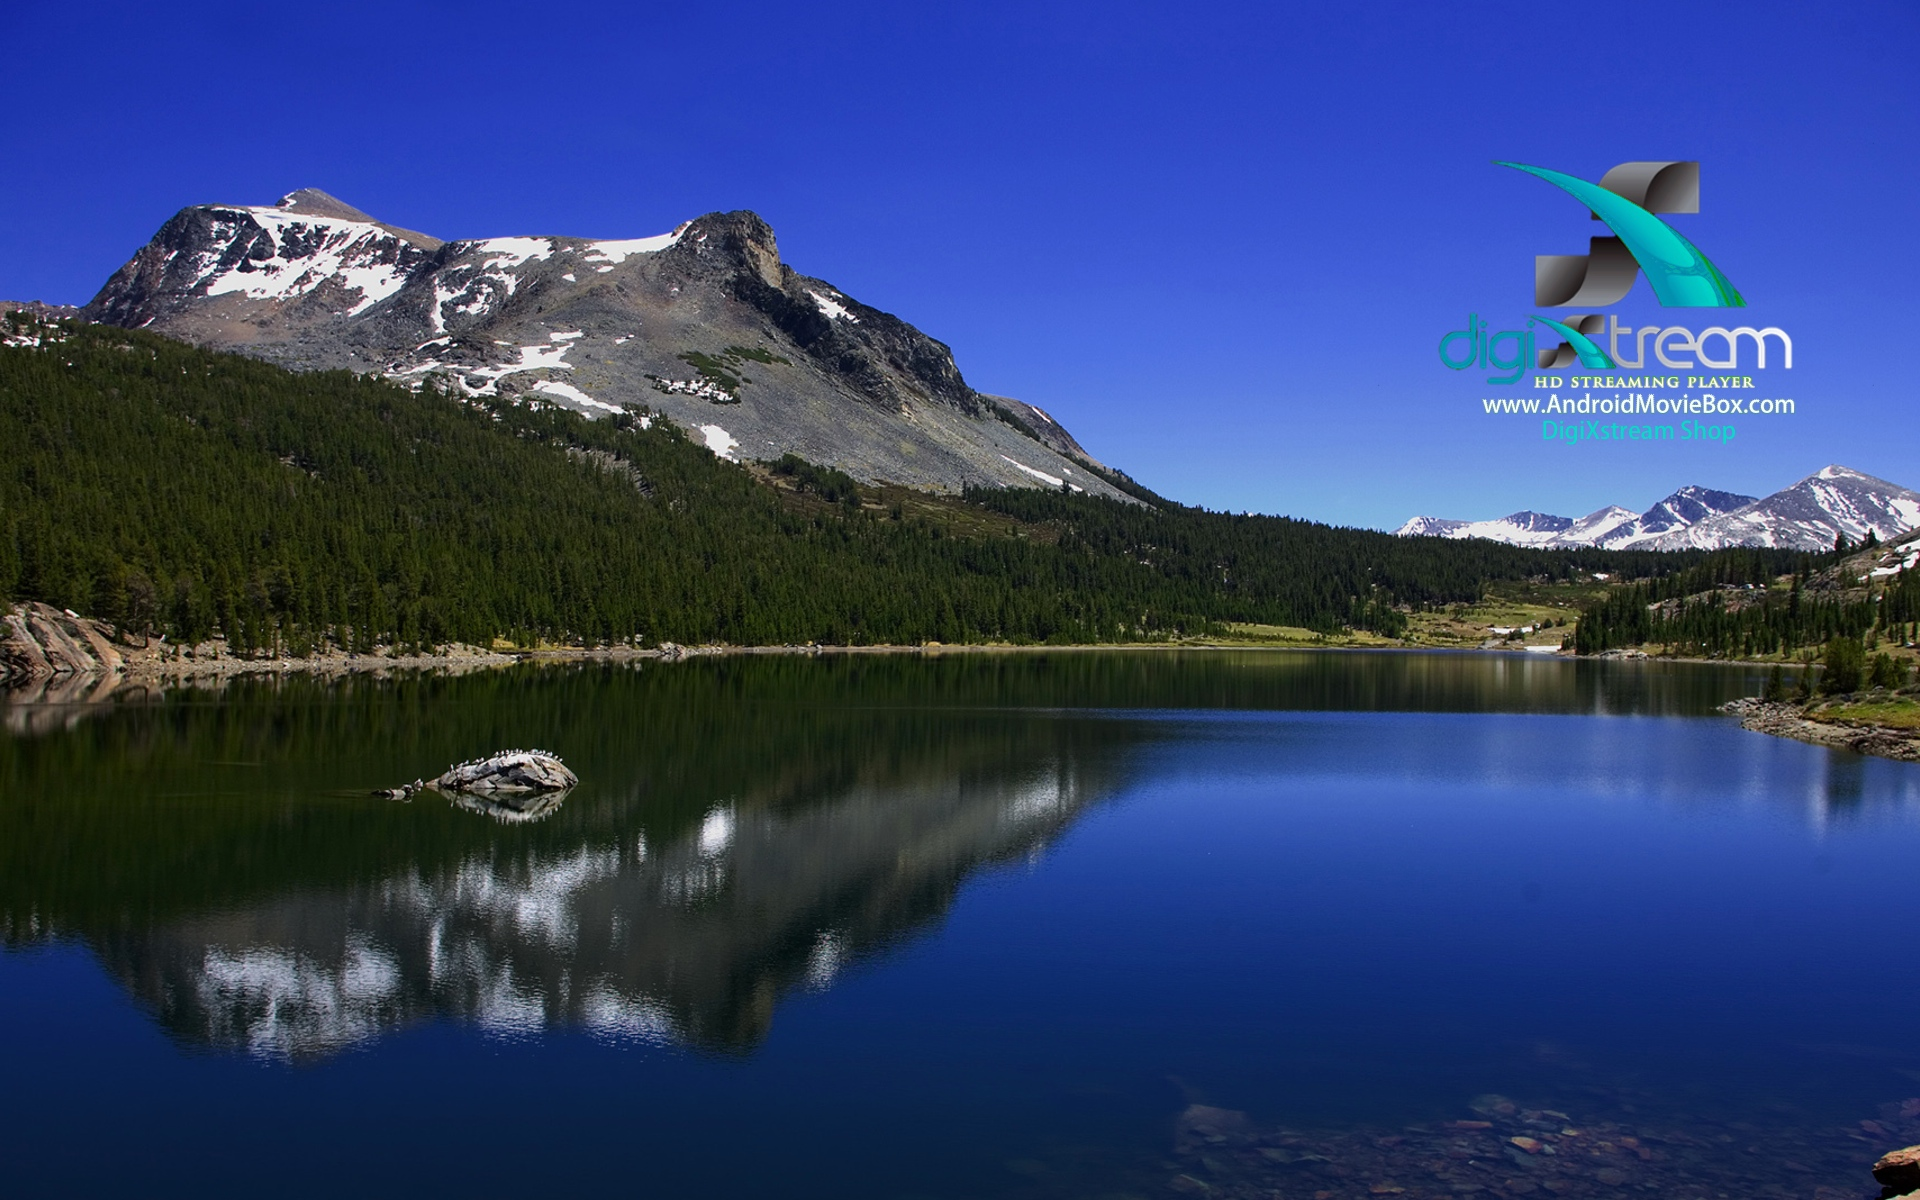 DigiXstream AndroidMovieBox Background moutain water